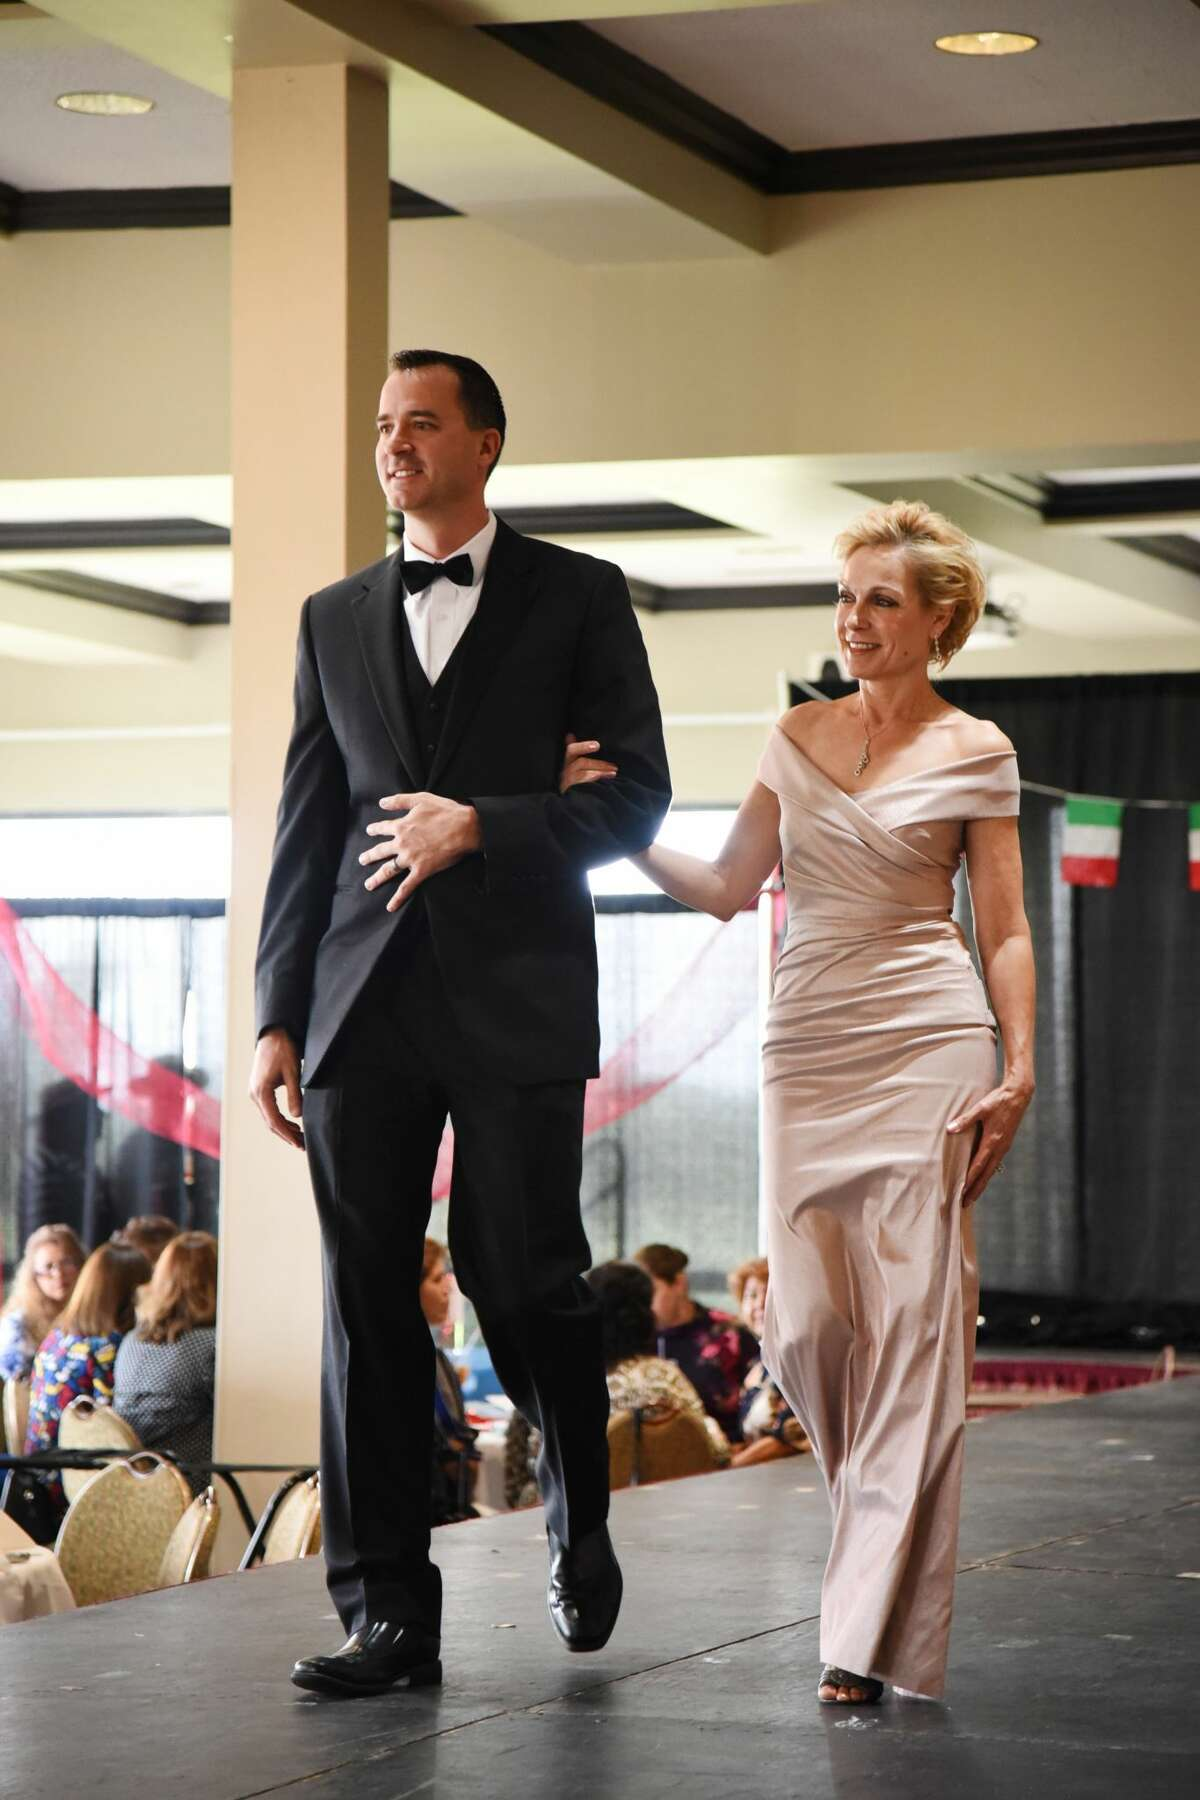 Participants walk, dance or sing along the runway for the fashion show put together by the Volunteer Services Council for the Border Region Behavioral Health Center, Wednesday, April 25, 2018.